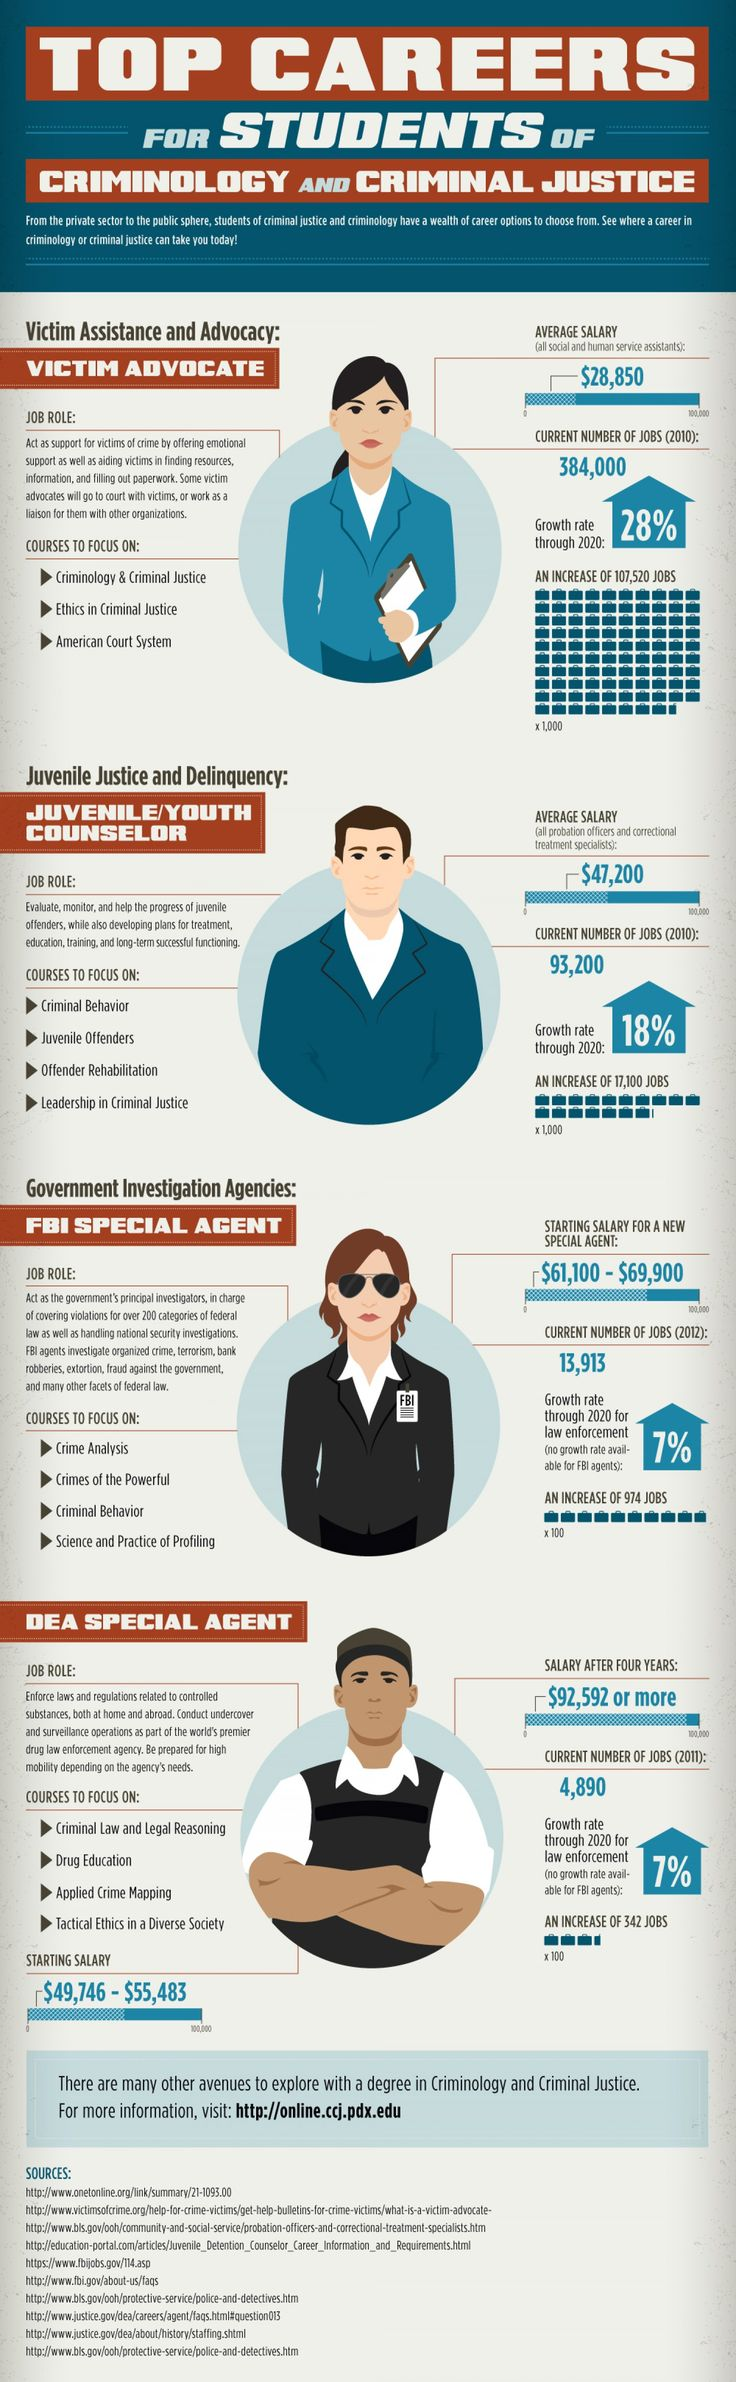 criminal careers Criminal justice is packed with interesting and rewarding careers we've written a comprehensive listing of criminal justice career you can get with a certificate, associate, or bachelor's degree with info about each career.